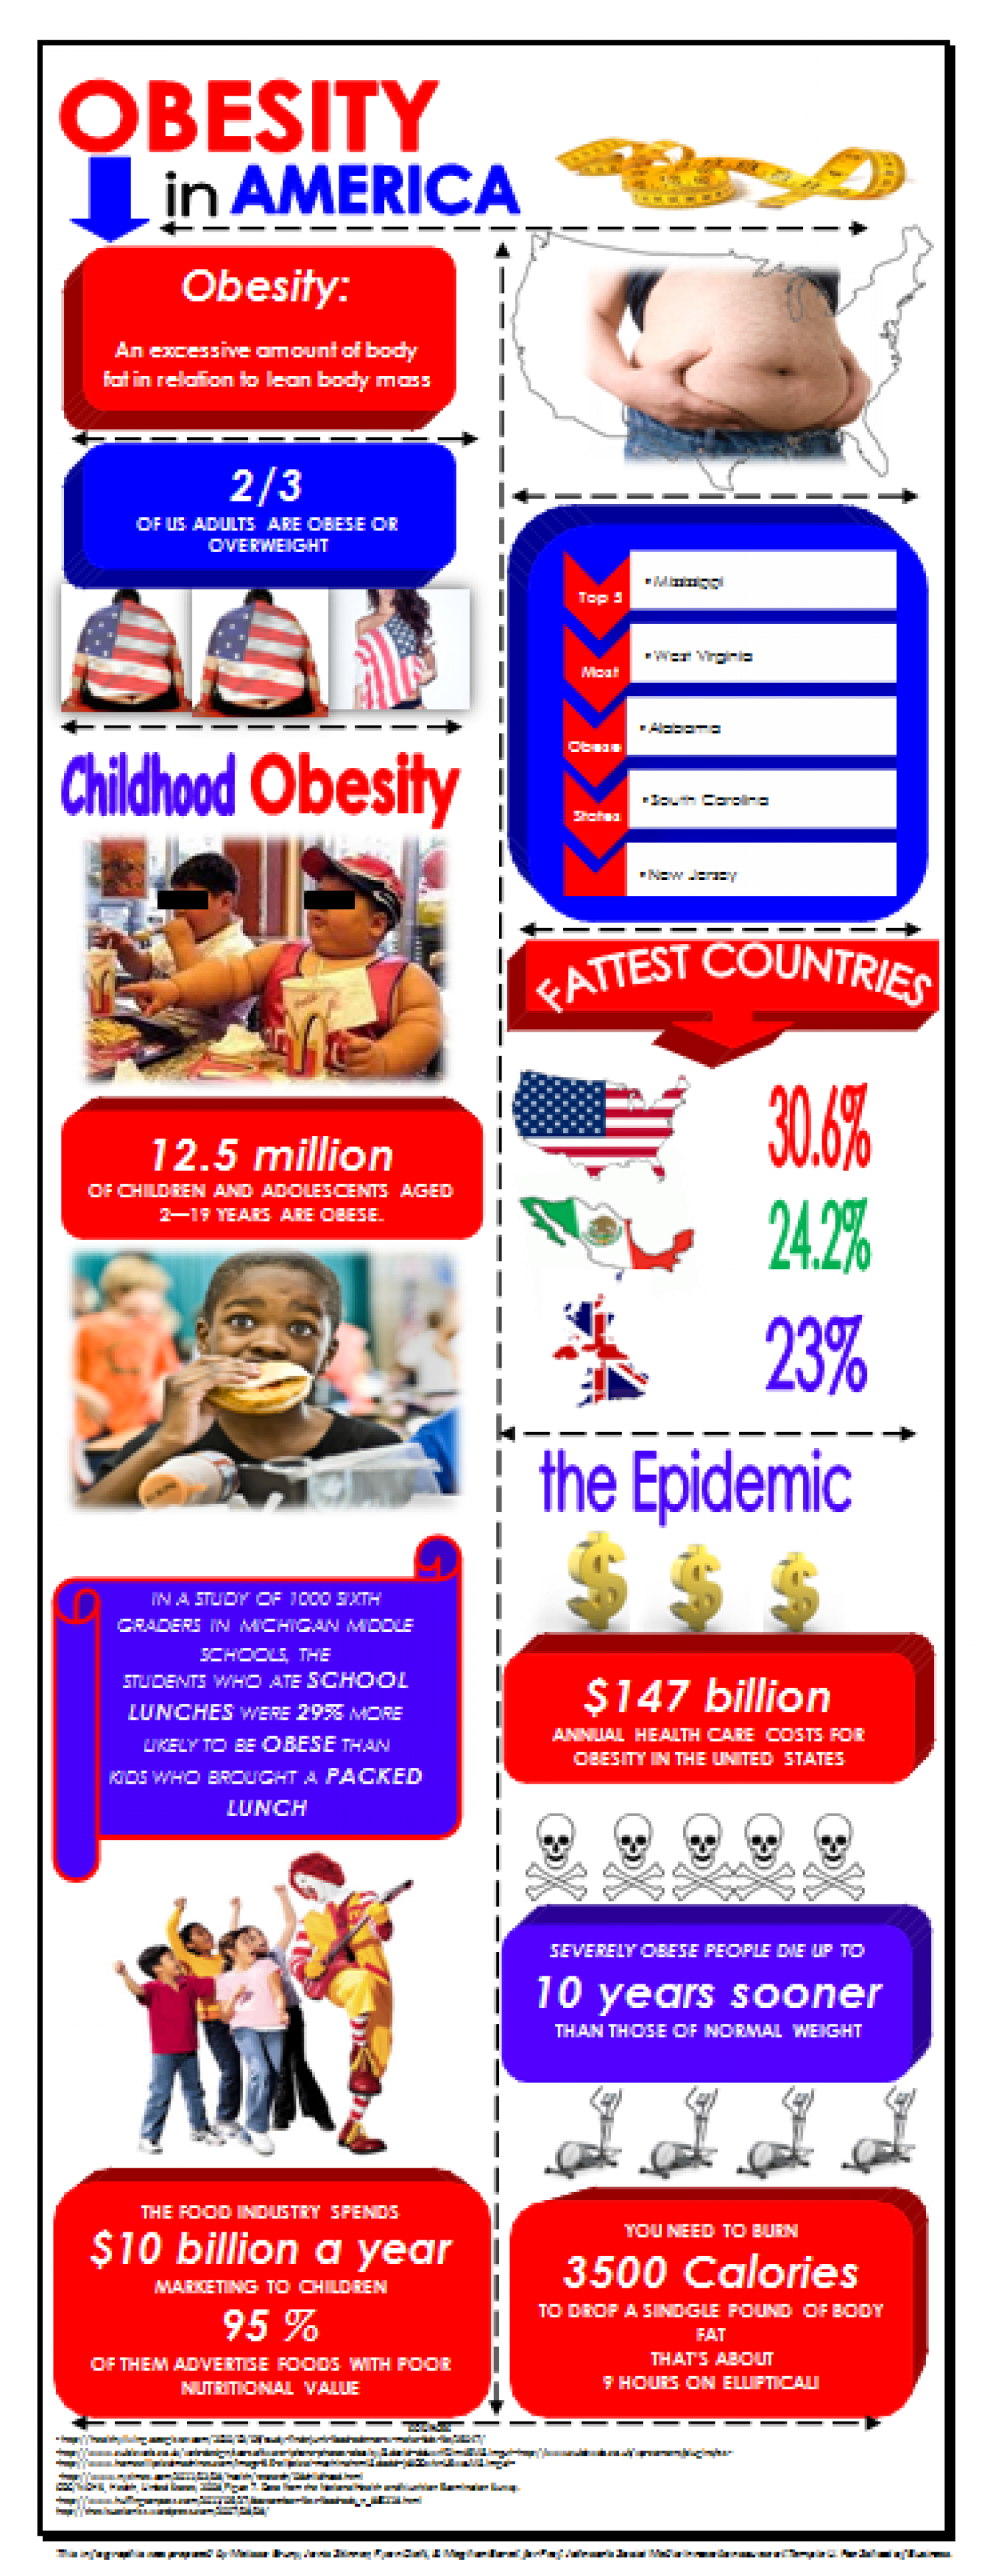 Obesity in America Infographic